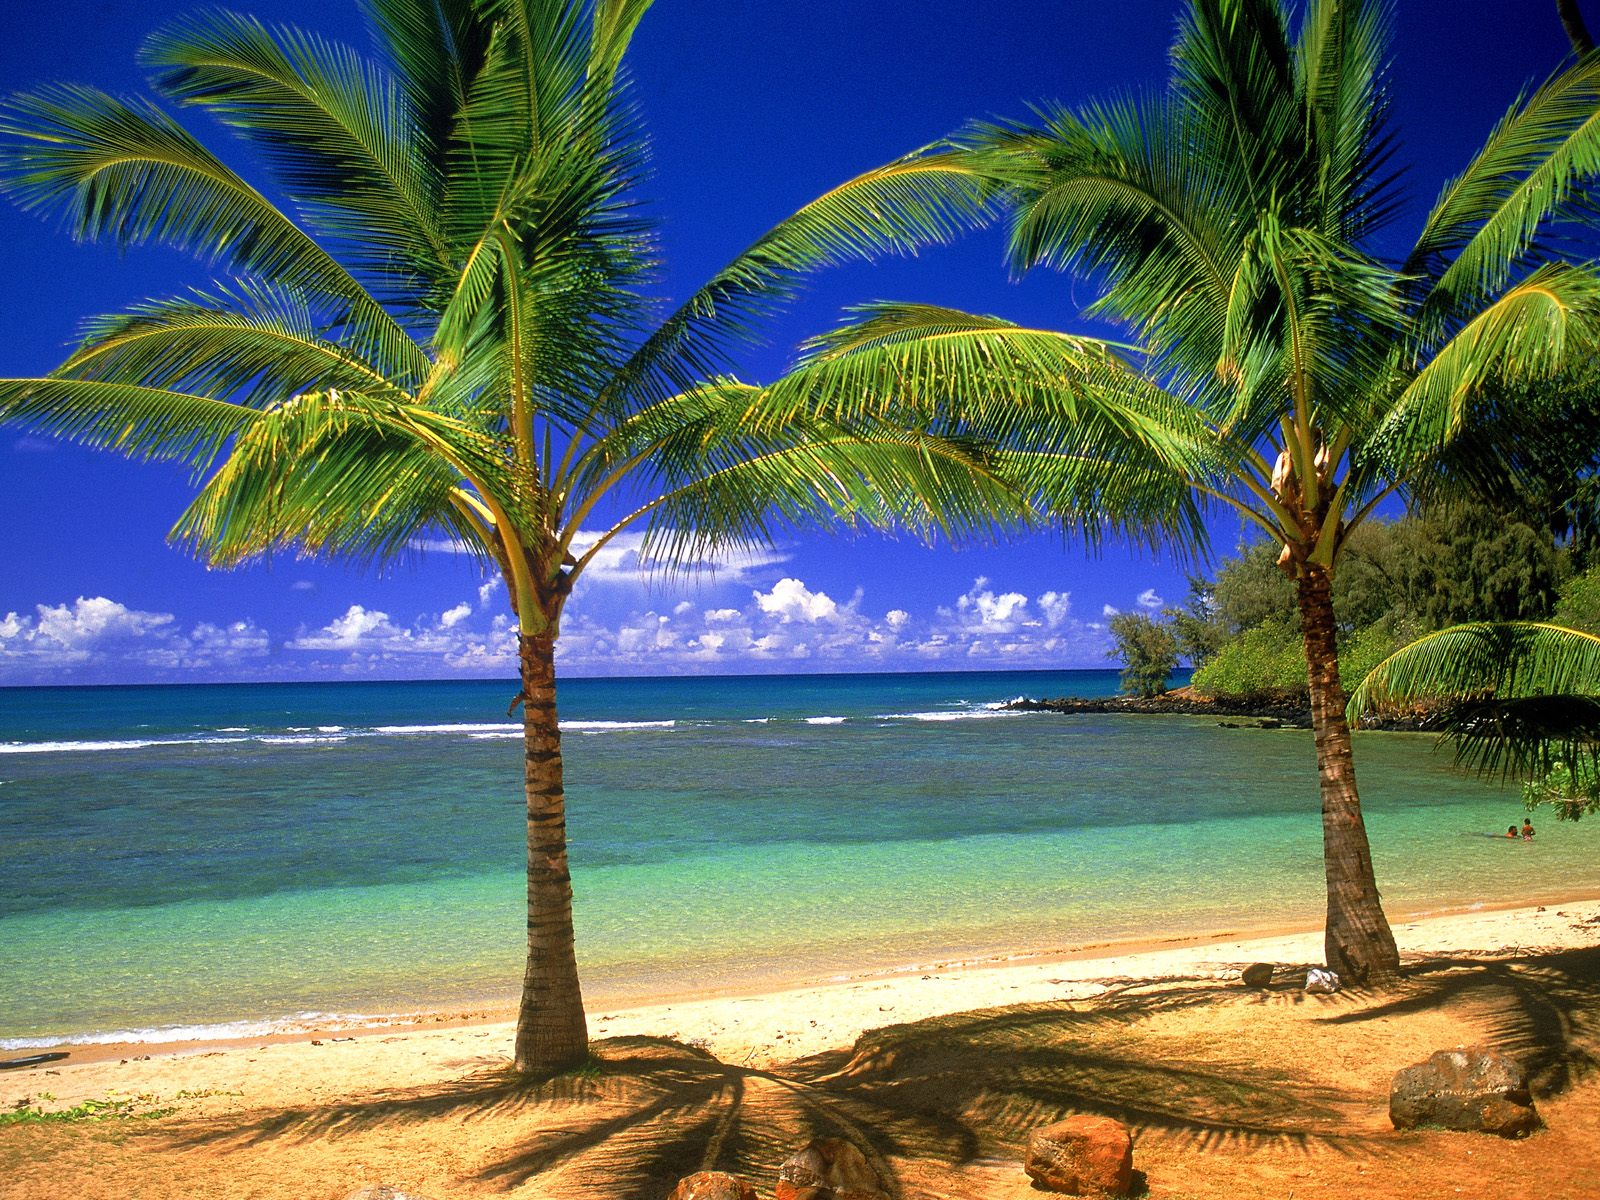 Beaches Islands HD Wallpapers Beach Desktop Backgrounds Images 1600x1200